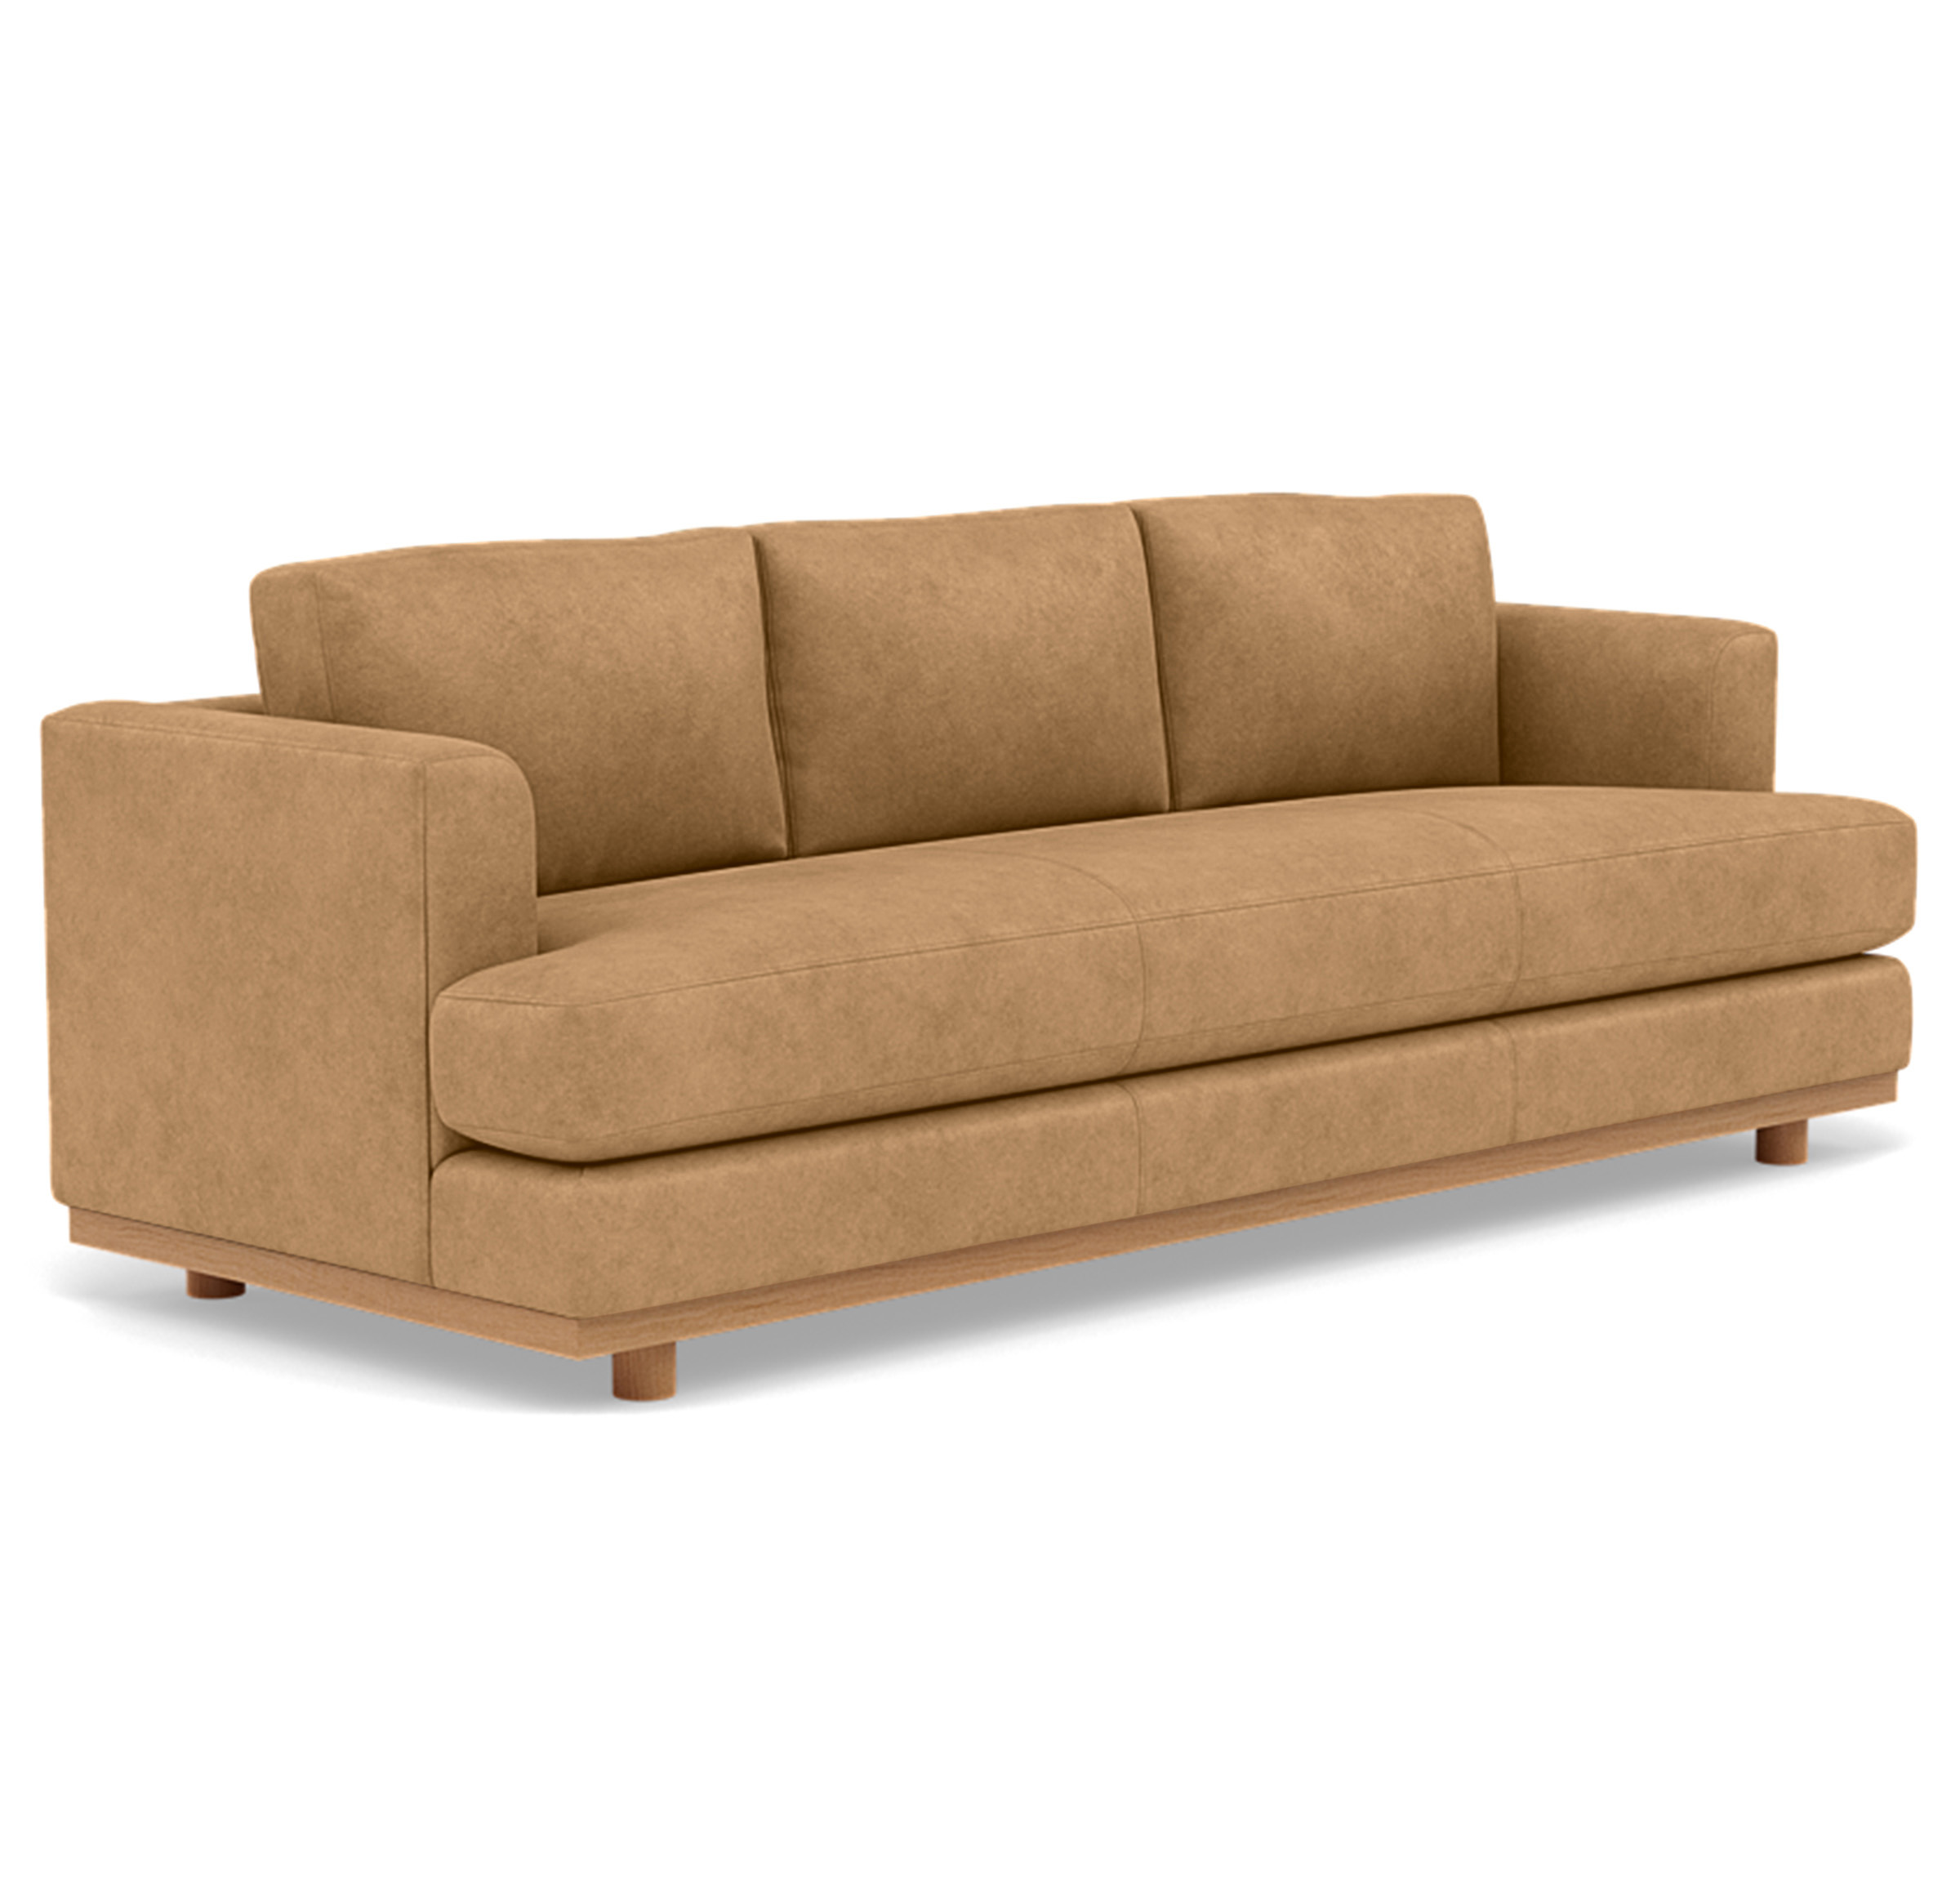 PORTER LEATHER SOFA, Moab - DESERT, hi-res